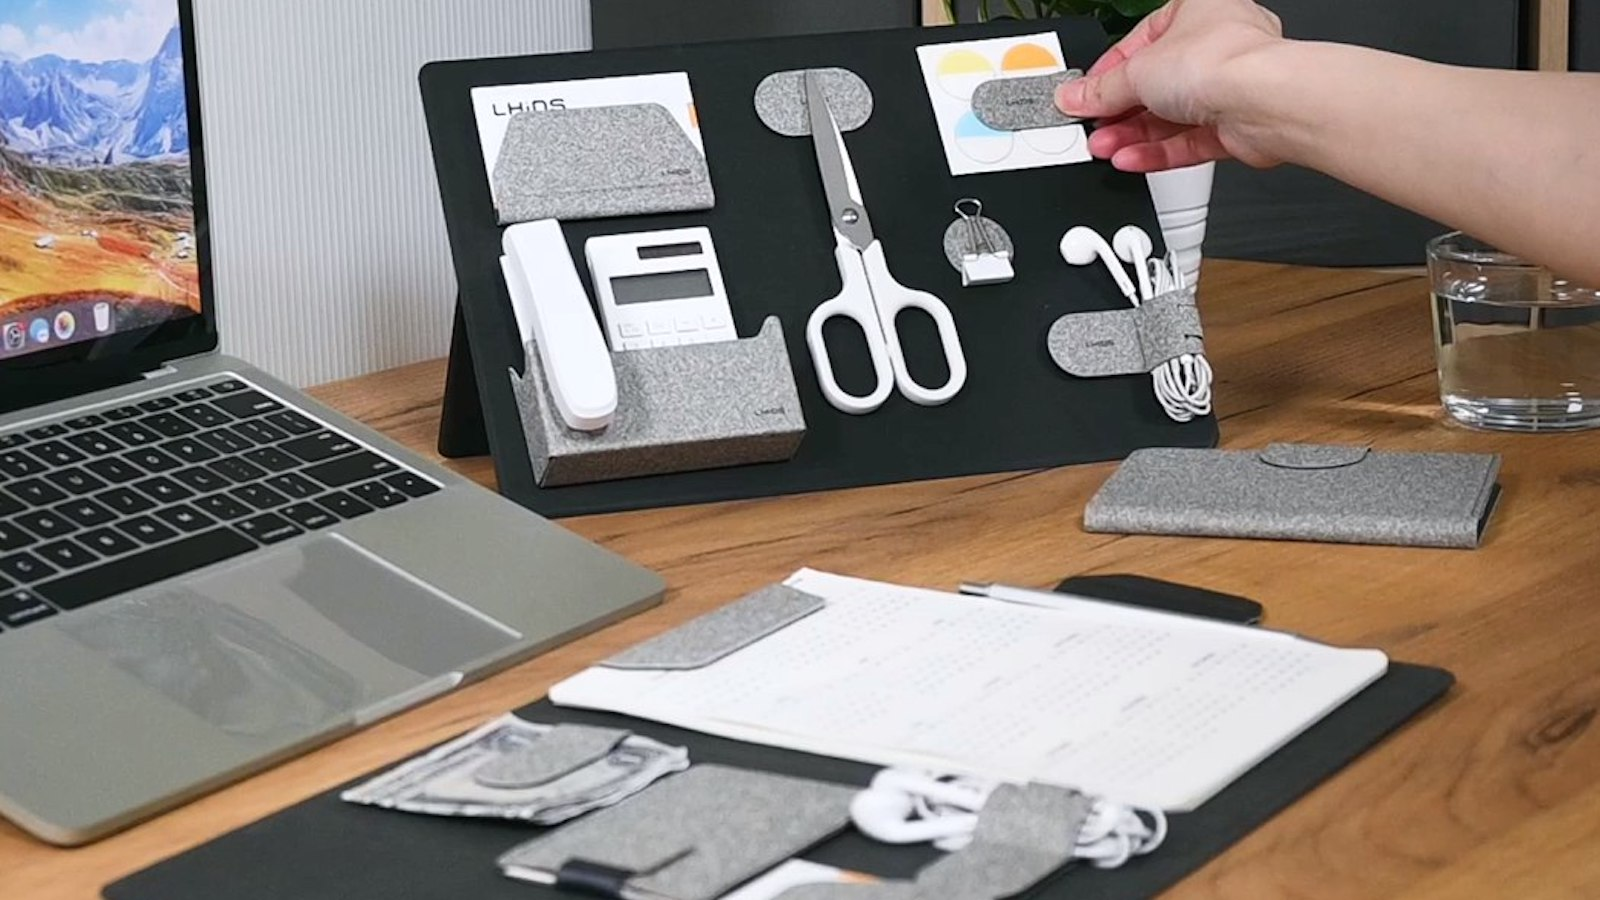 LHiDS Creative MagEasy Magnetic Essentials Organizer keeps your work items tidy